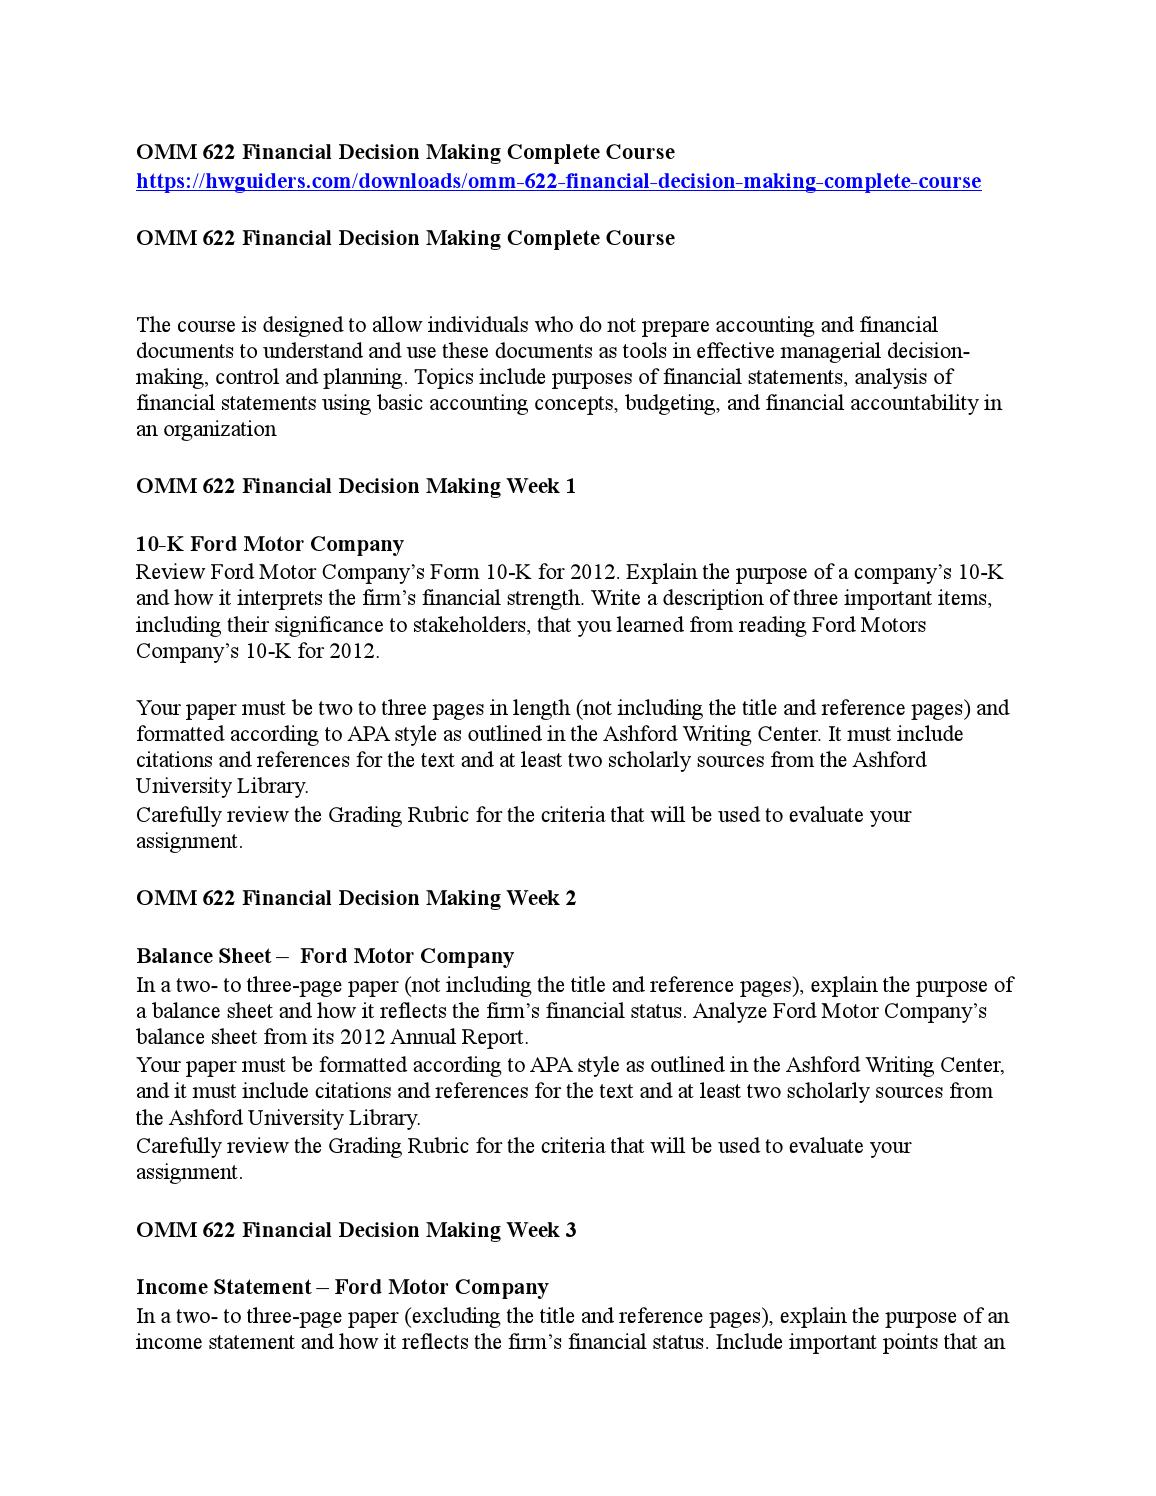 omm 622 week 3 assignment income statement Income statement – ford motor company in a two- to three- page paper (not including the title and reference pages), briefly explain the purpose of an income statement and analyze ford motor company's income statement from its 2012 annual reportinclude the important points that an analyst would use in assessing the financial condition of the company.